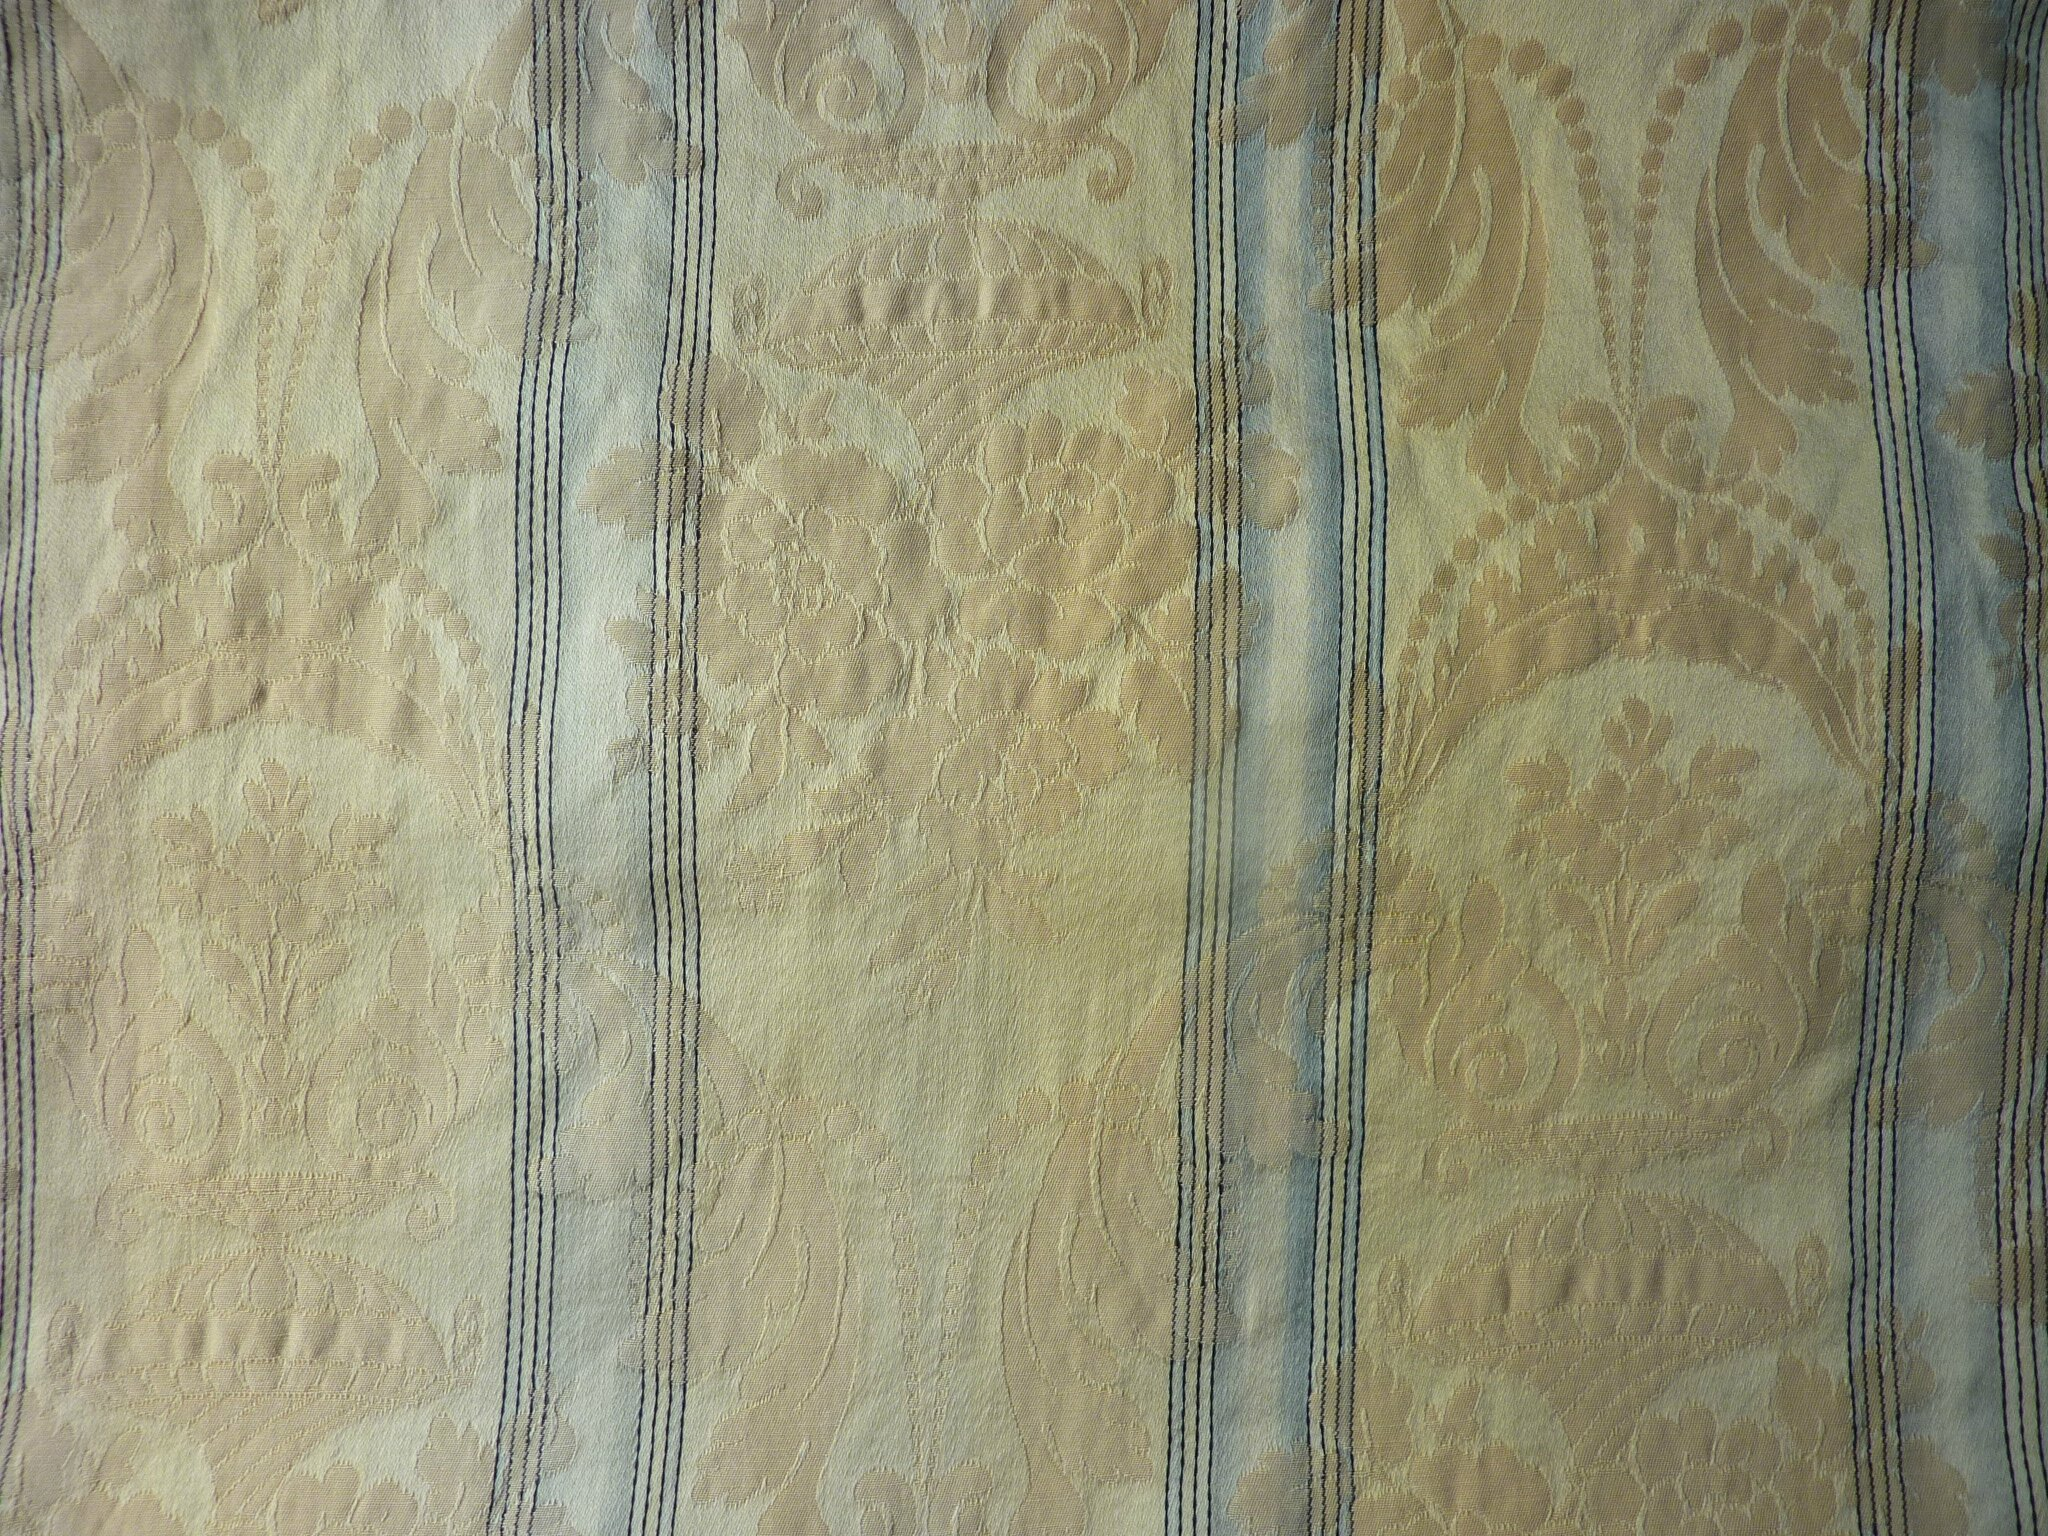 1941 tissu ancien napoleon iii ameublement damass a rayures fan l 39 univers textile des for Tissus rayures ameublement